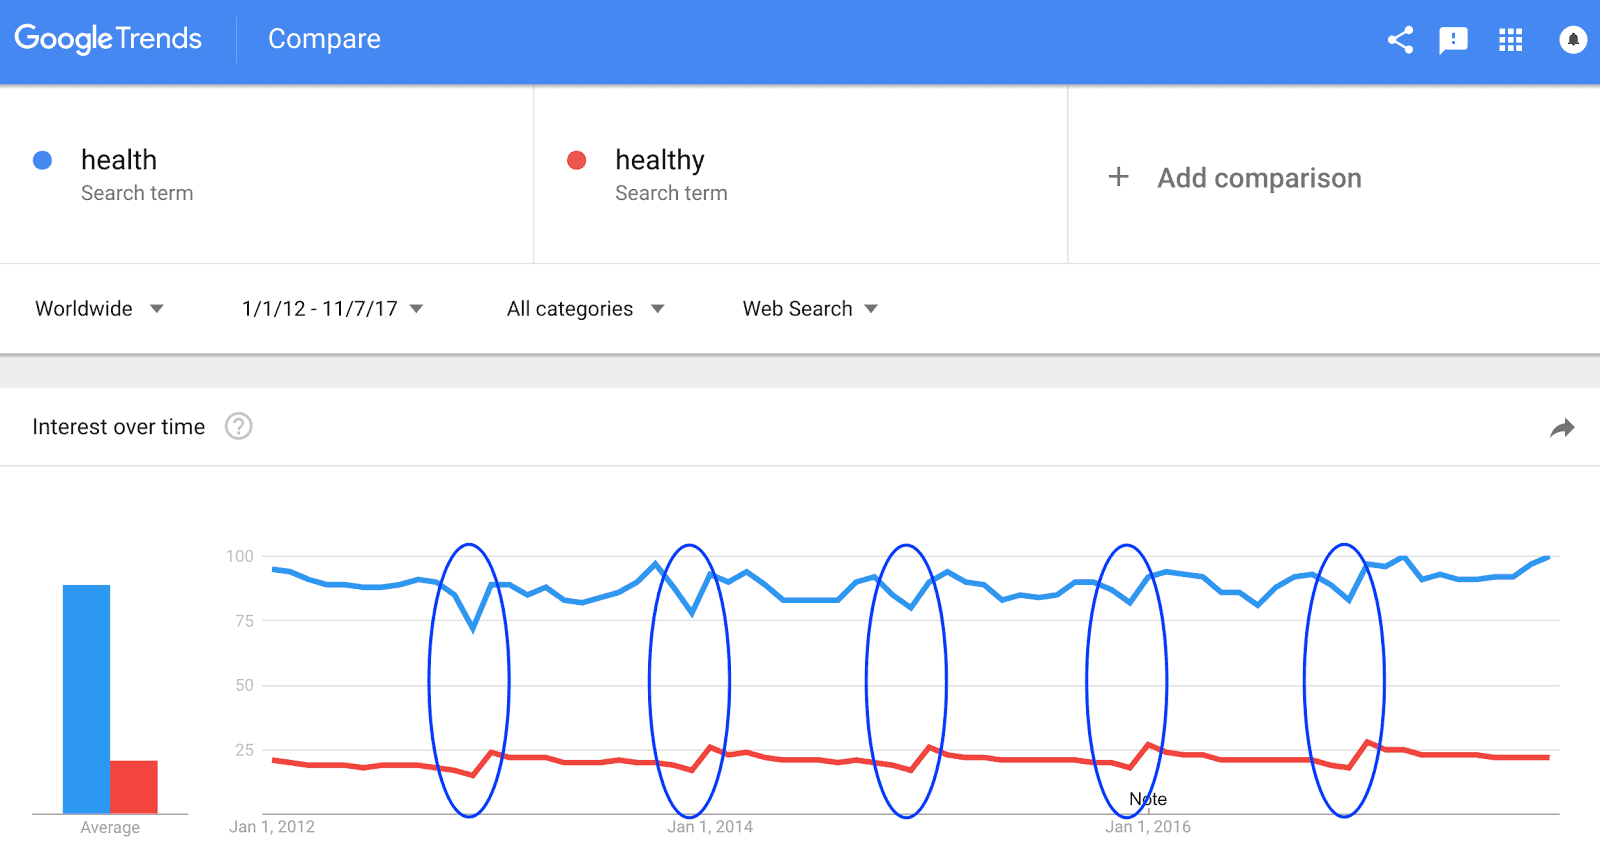 text showing a Google Trend result that compares the search volume of health and healthy in December vs January